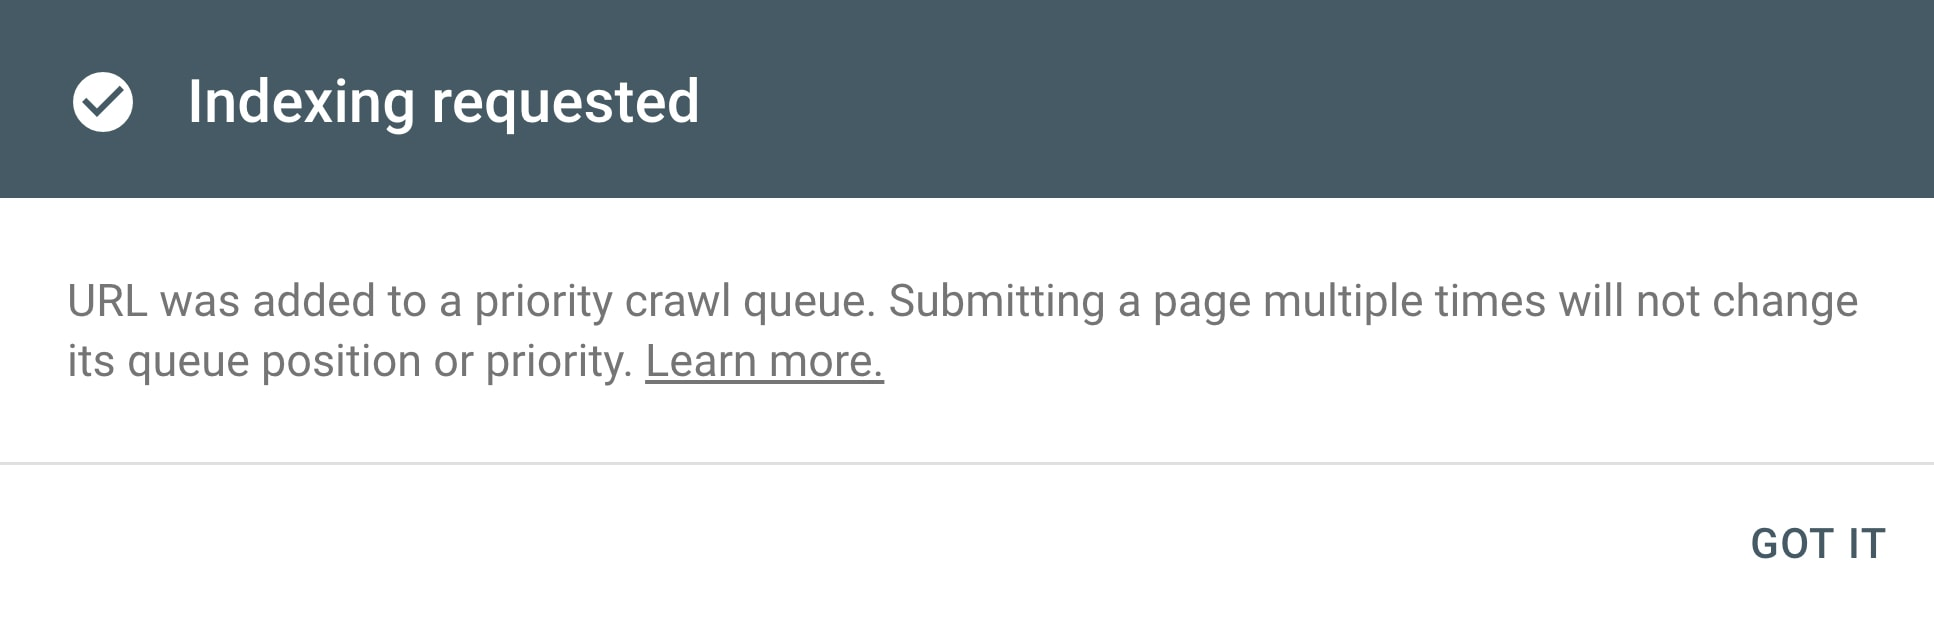 A page has been submitted for indexing in the Google Search Console